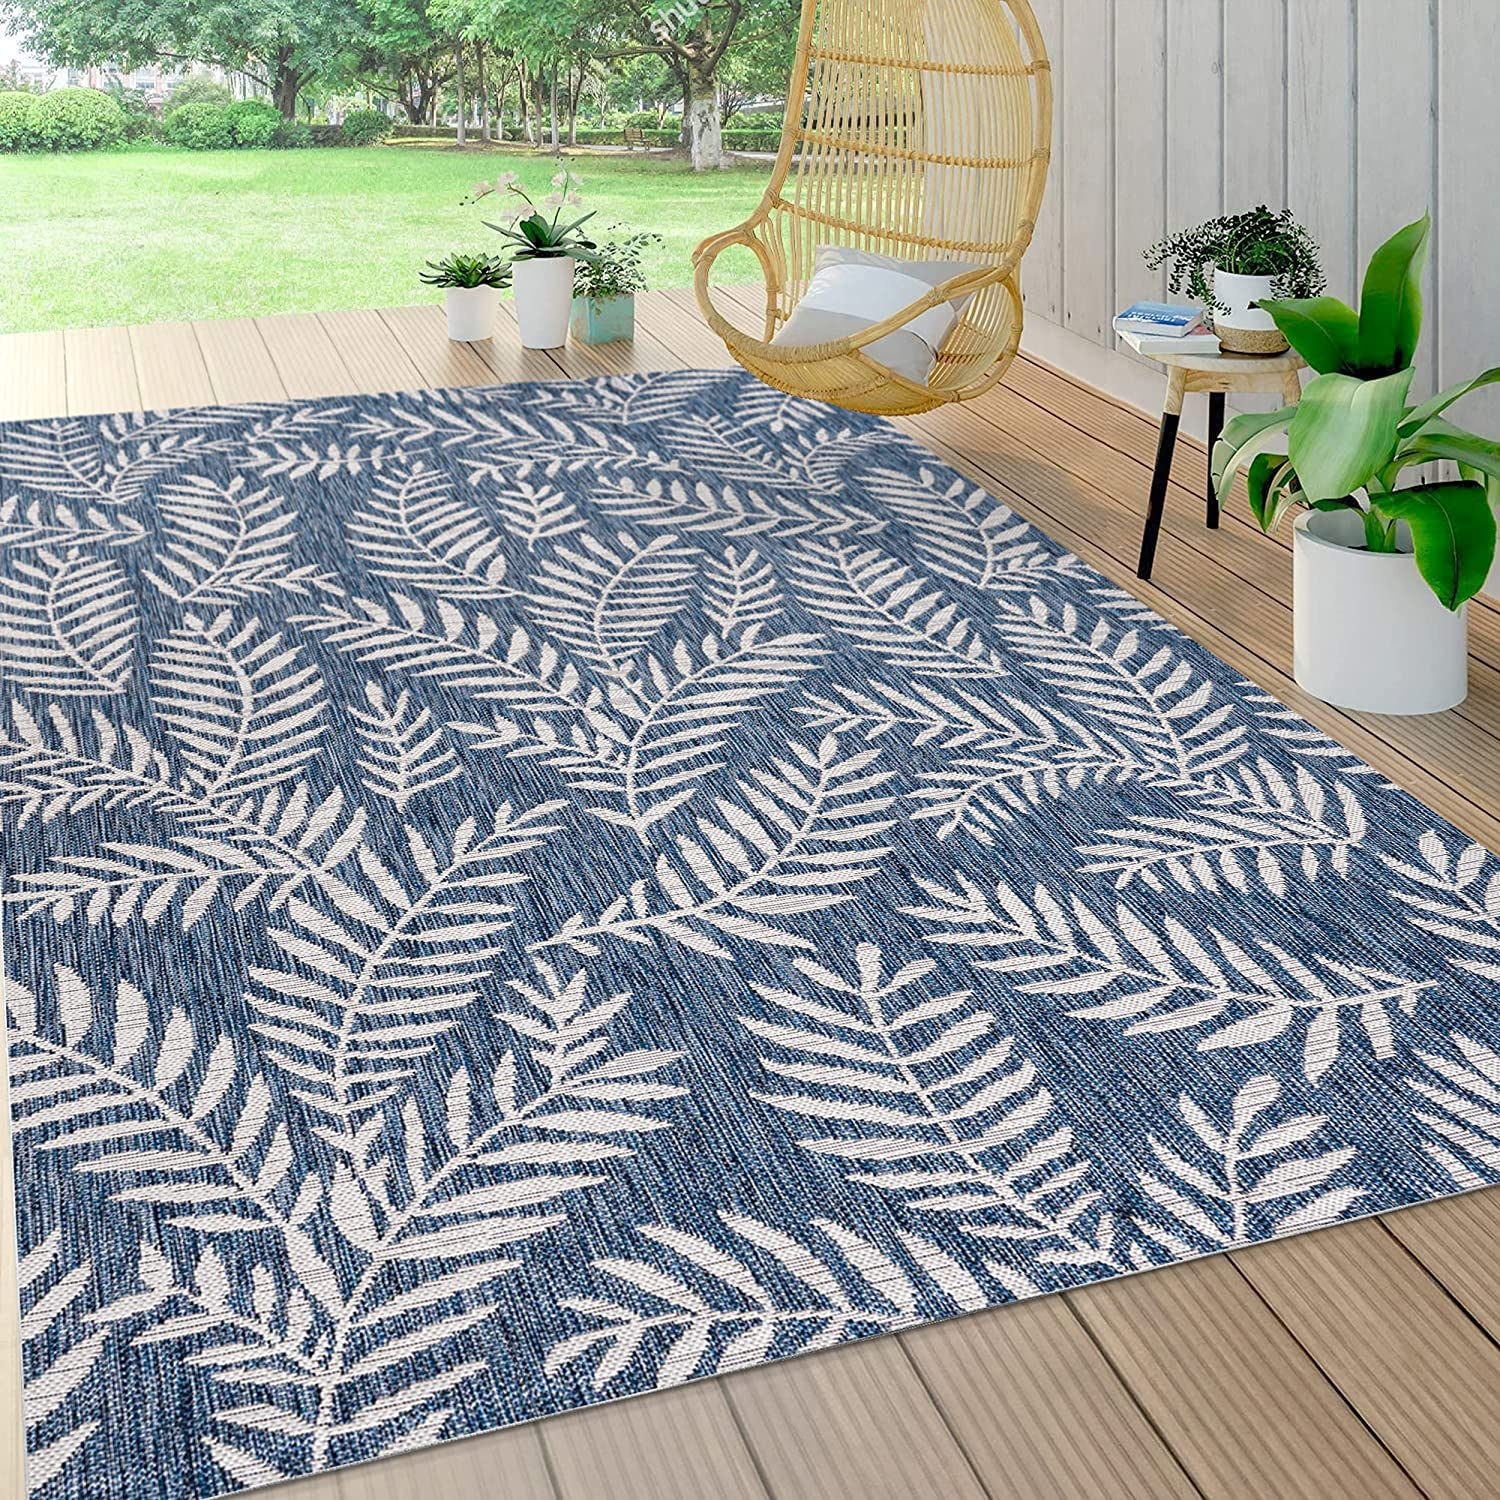 JONATHAN Y Nevis Palm Frond Indoor Outdoor Navy 5 ft. 3 x quality 67% OFF of fixed price assurance Ivory